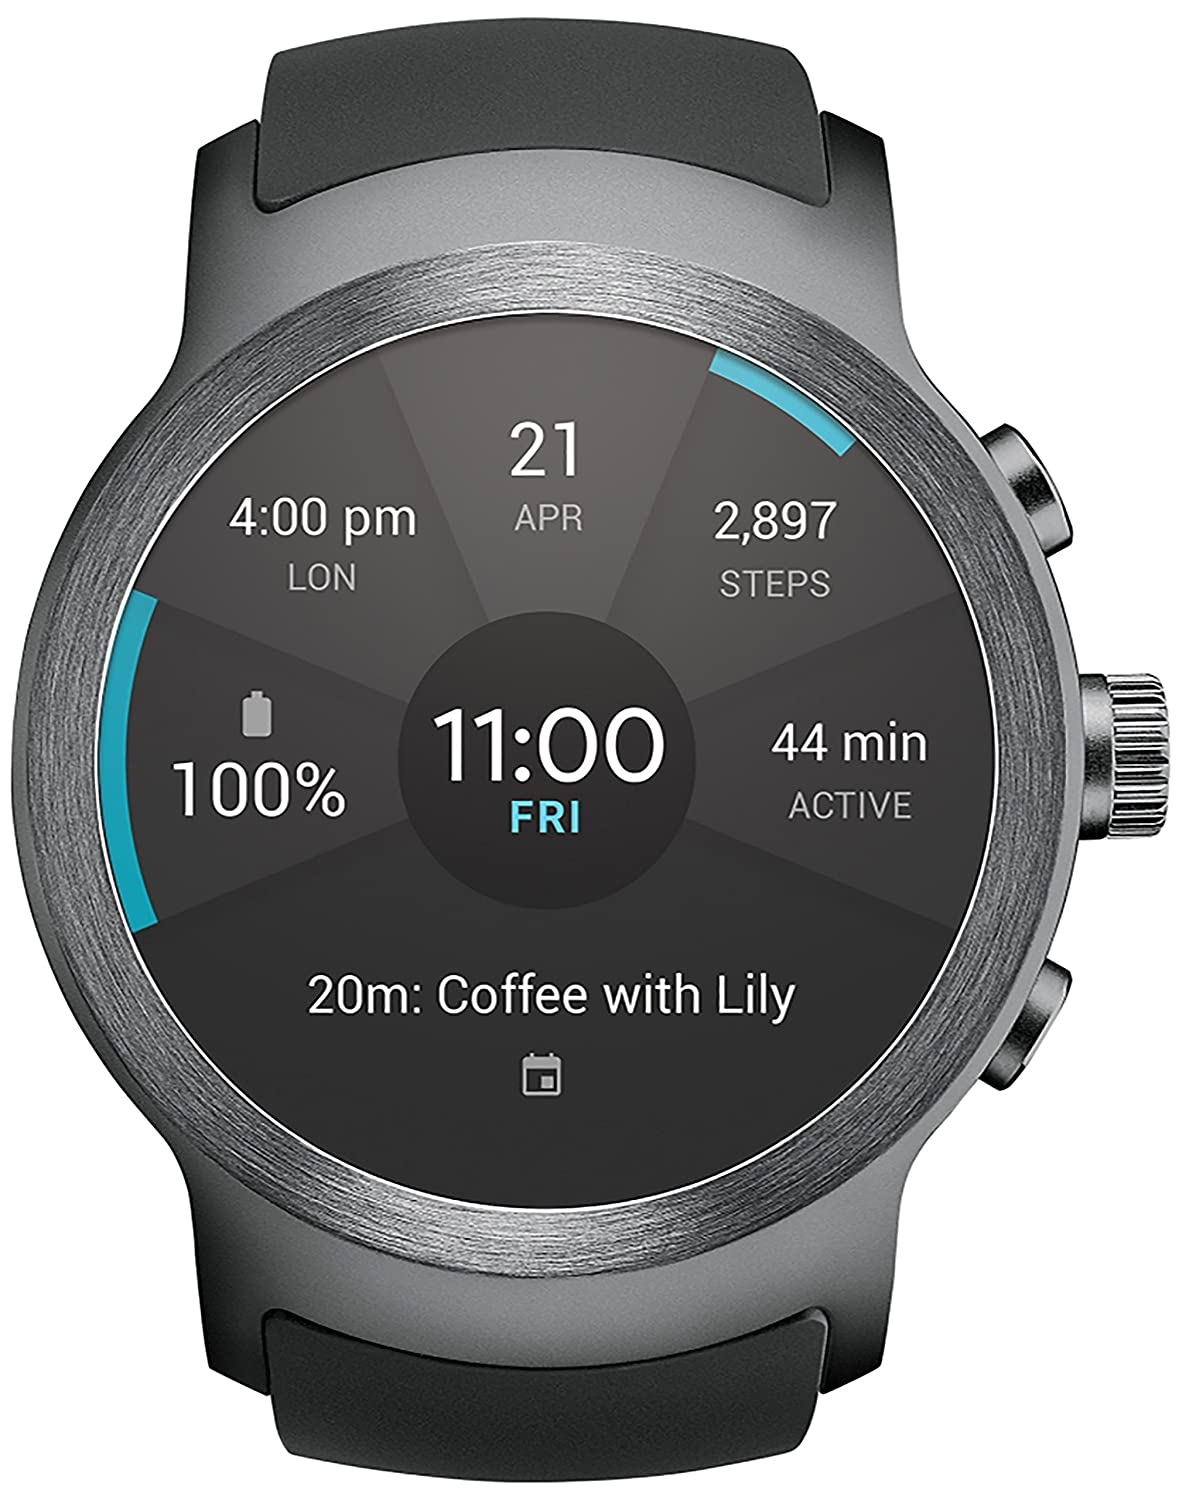 The LG Watch Sport, Impressive, Easy, Interface, Modern